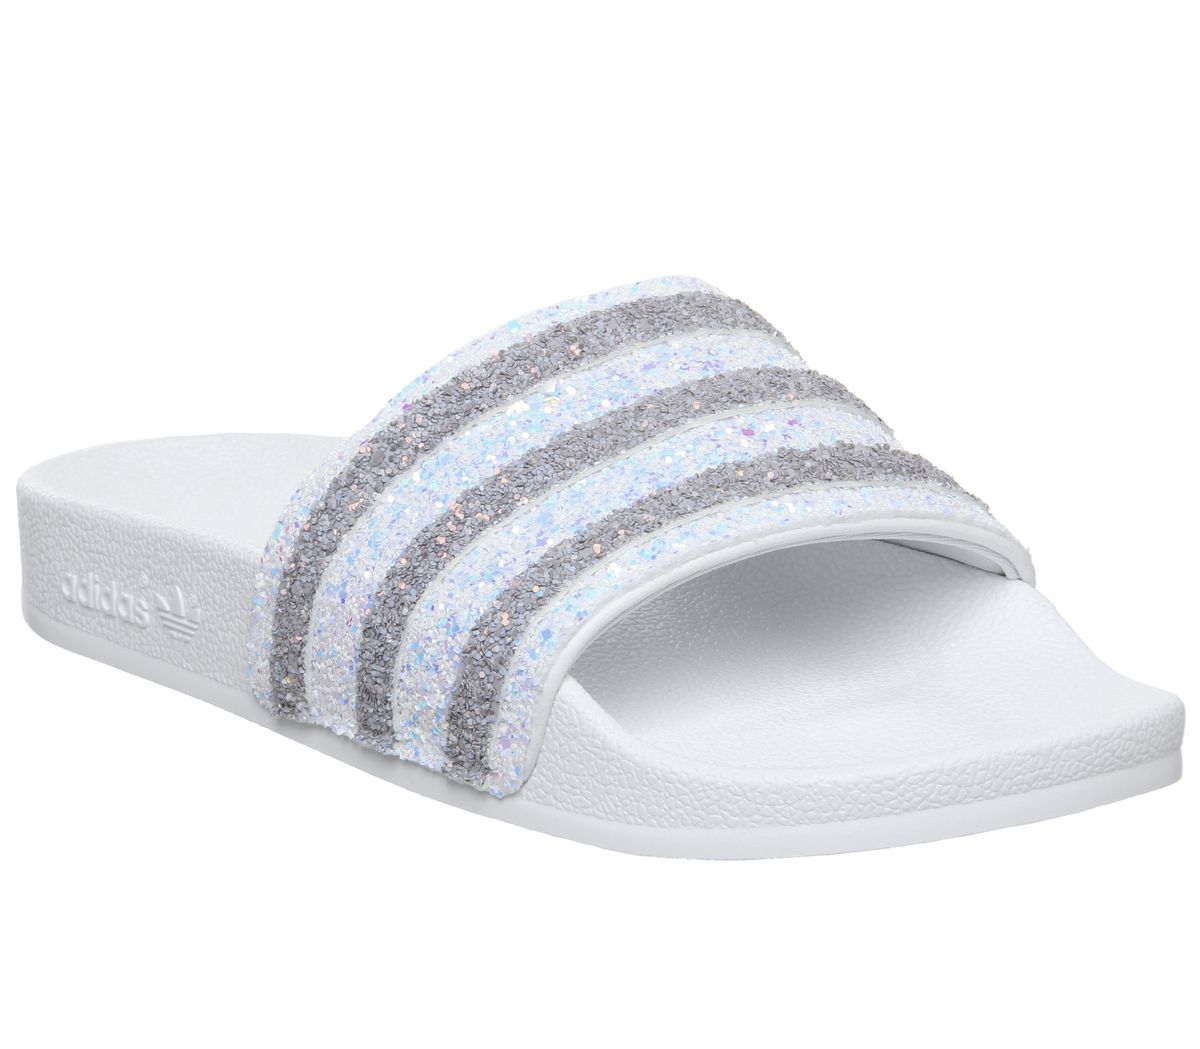 Details about Womens Adidas Adilette Sliders White Glitter Sandals